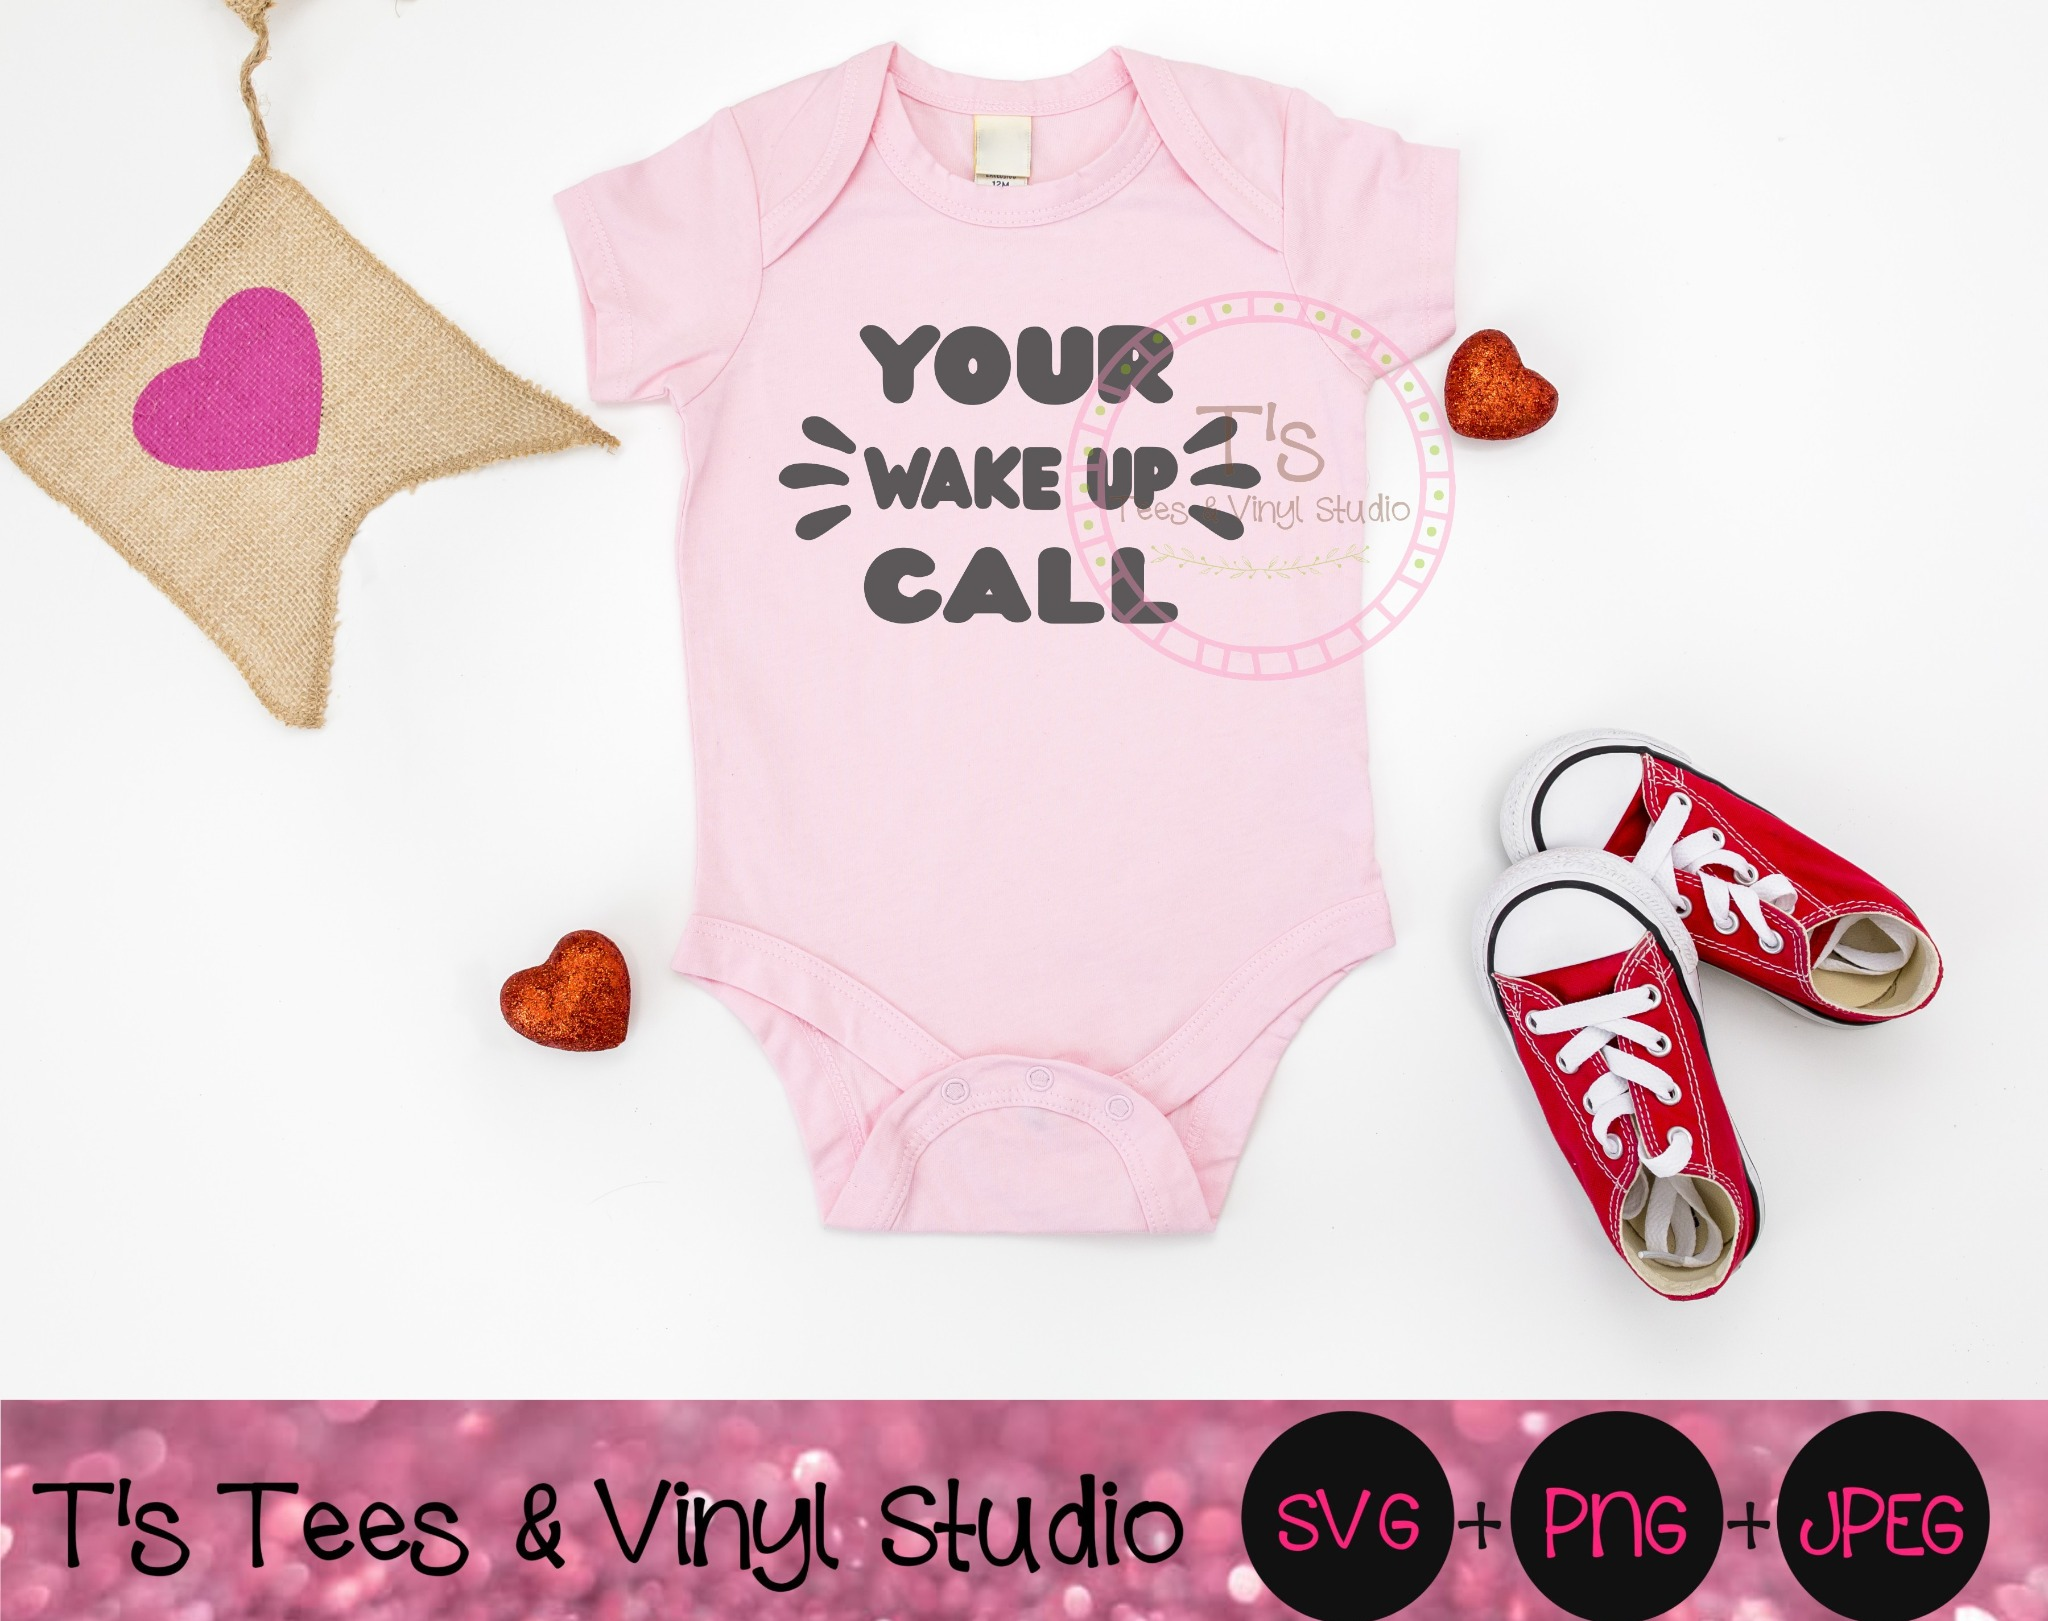 Your Wake Up Call SVG, New Baby, Newborn Alarm, Baby Alarm, New Parents, No Sleep, Baby Clothes, Bab